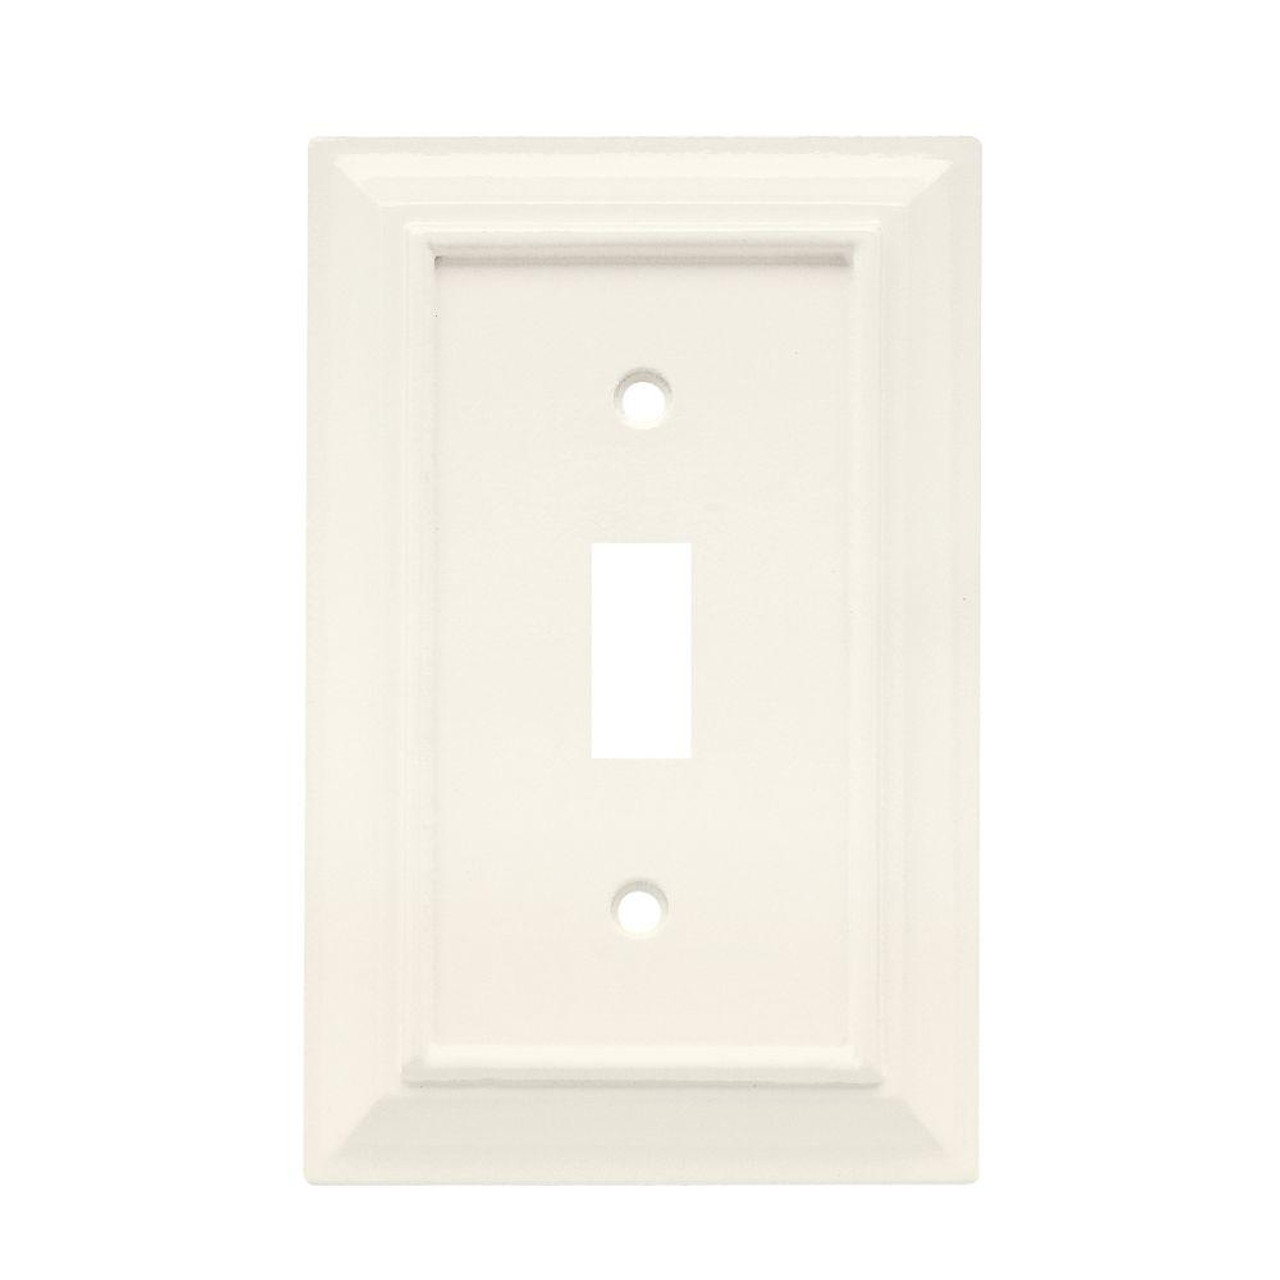 W10762-W White Architect Single Switch Cover Plate